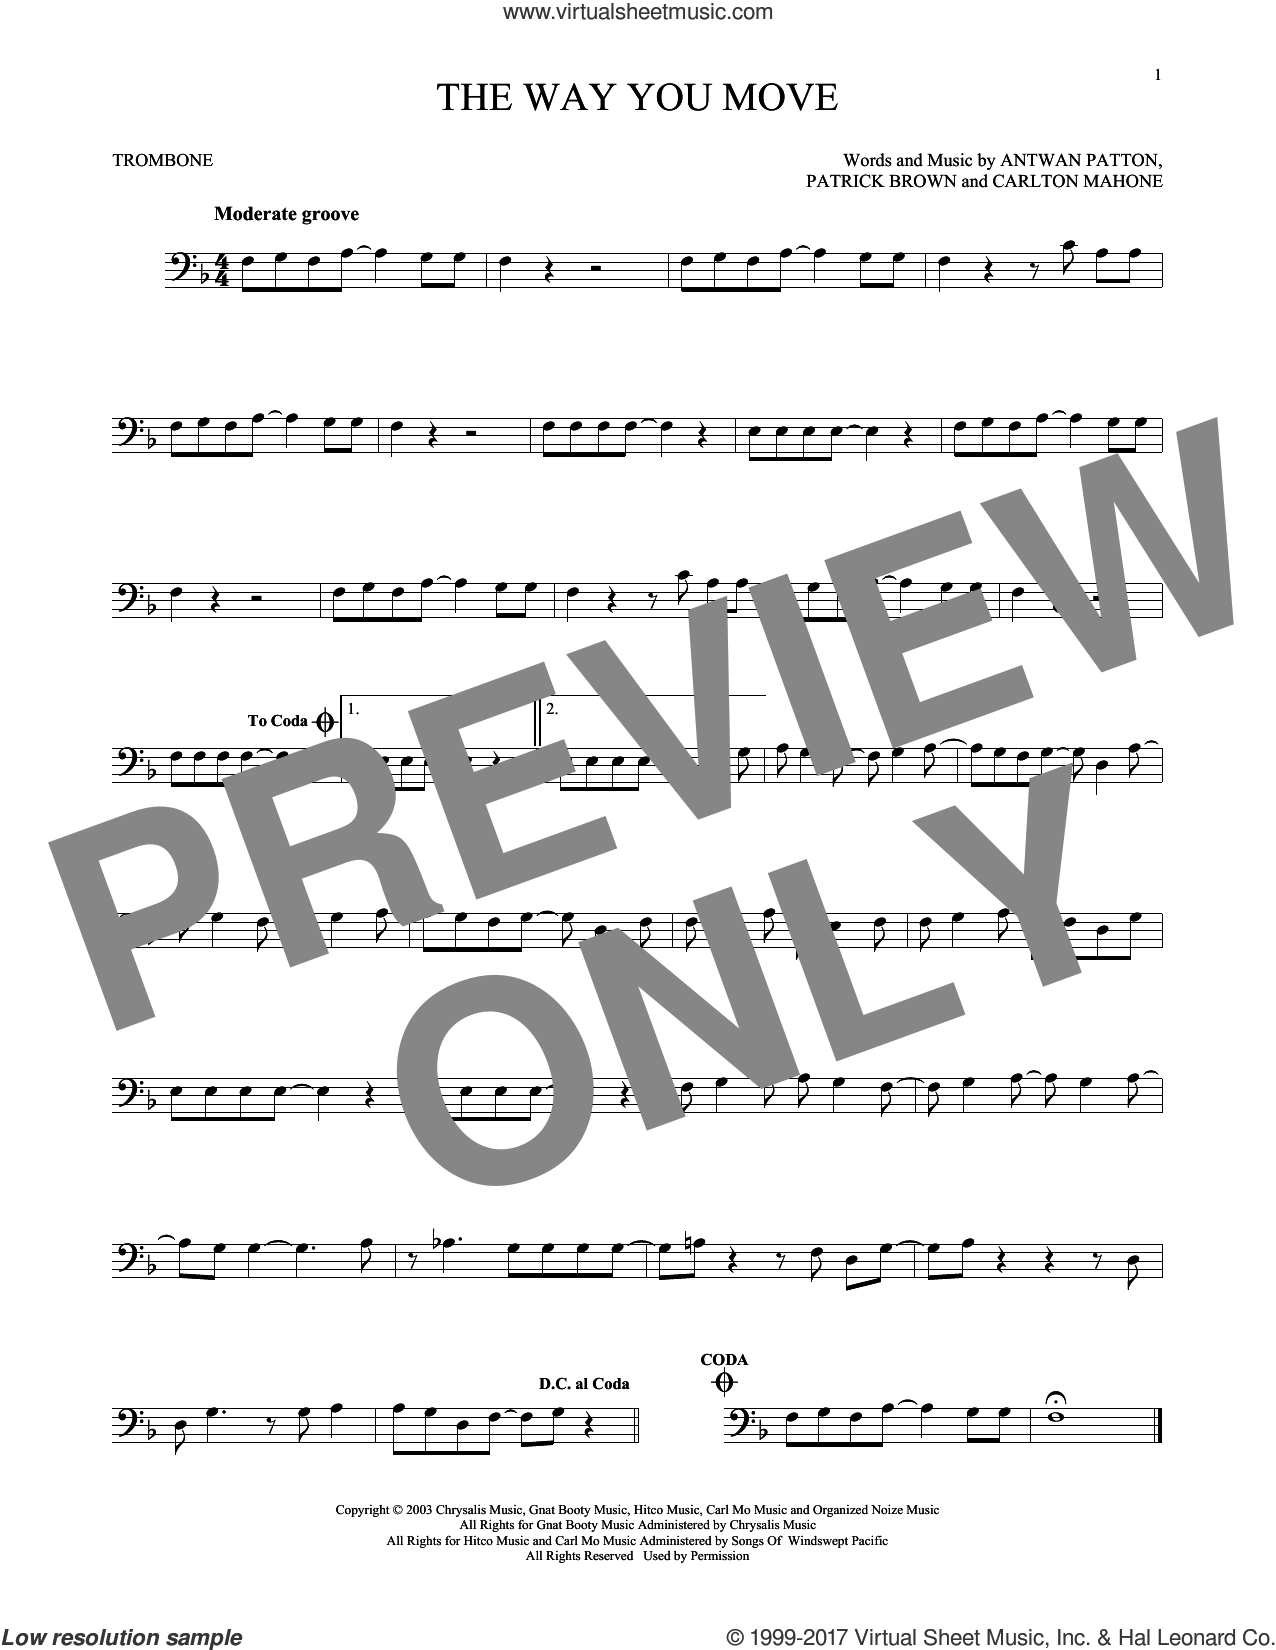 The Way You Move sheet music for trombone solo by Outkast featuring Sleepy Brown, intermediate. Score Image Preview.